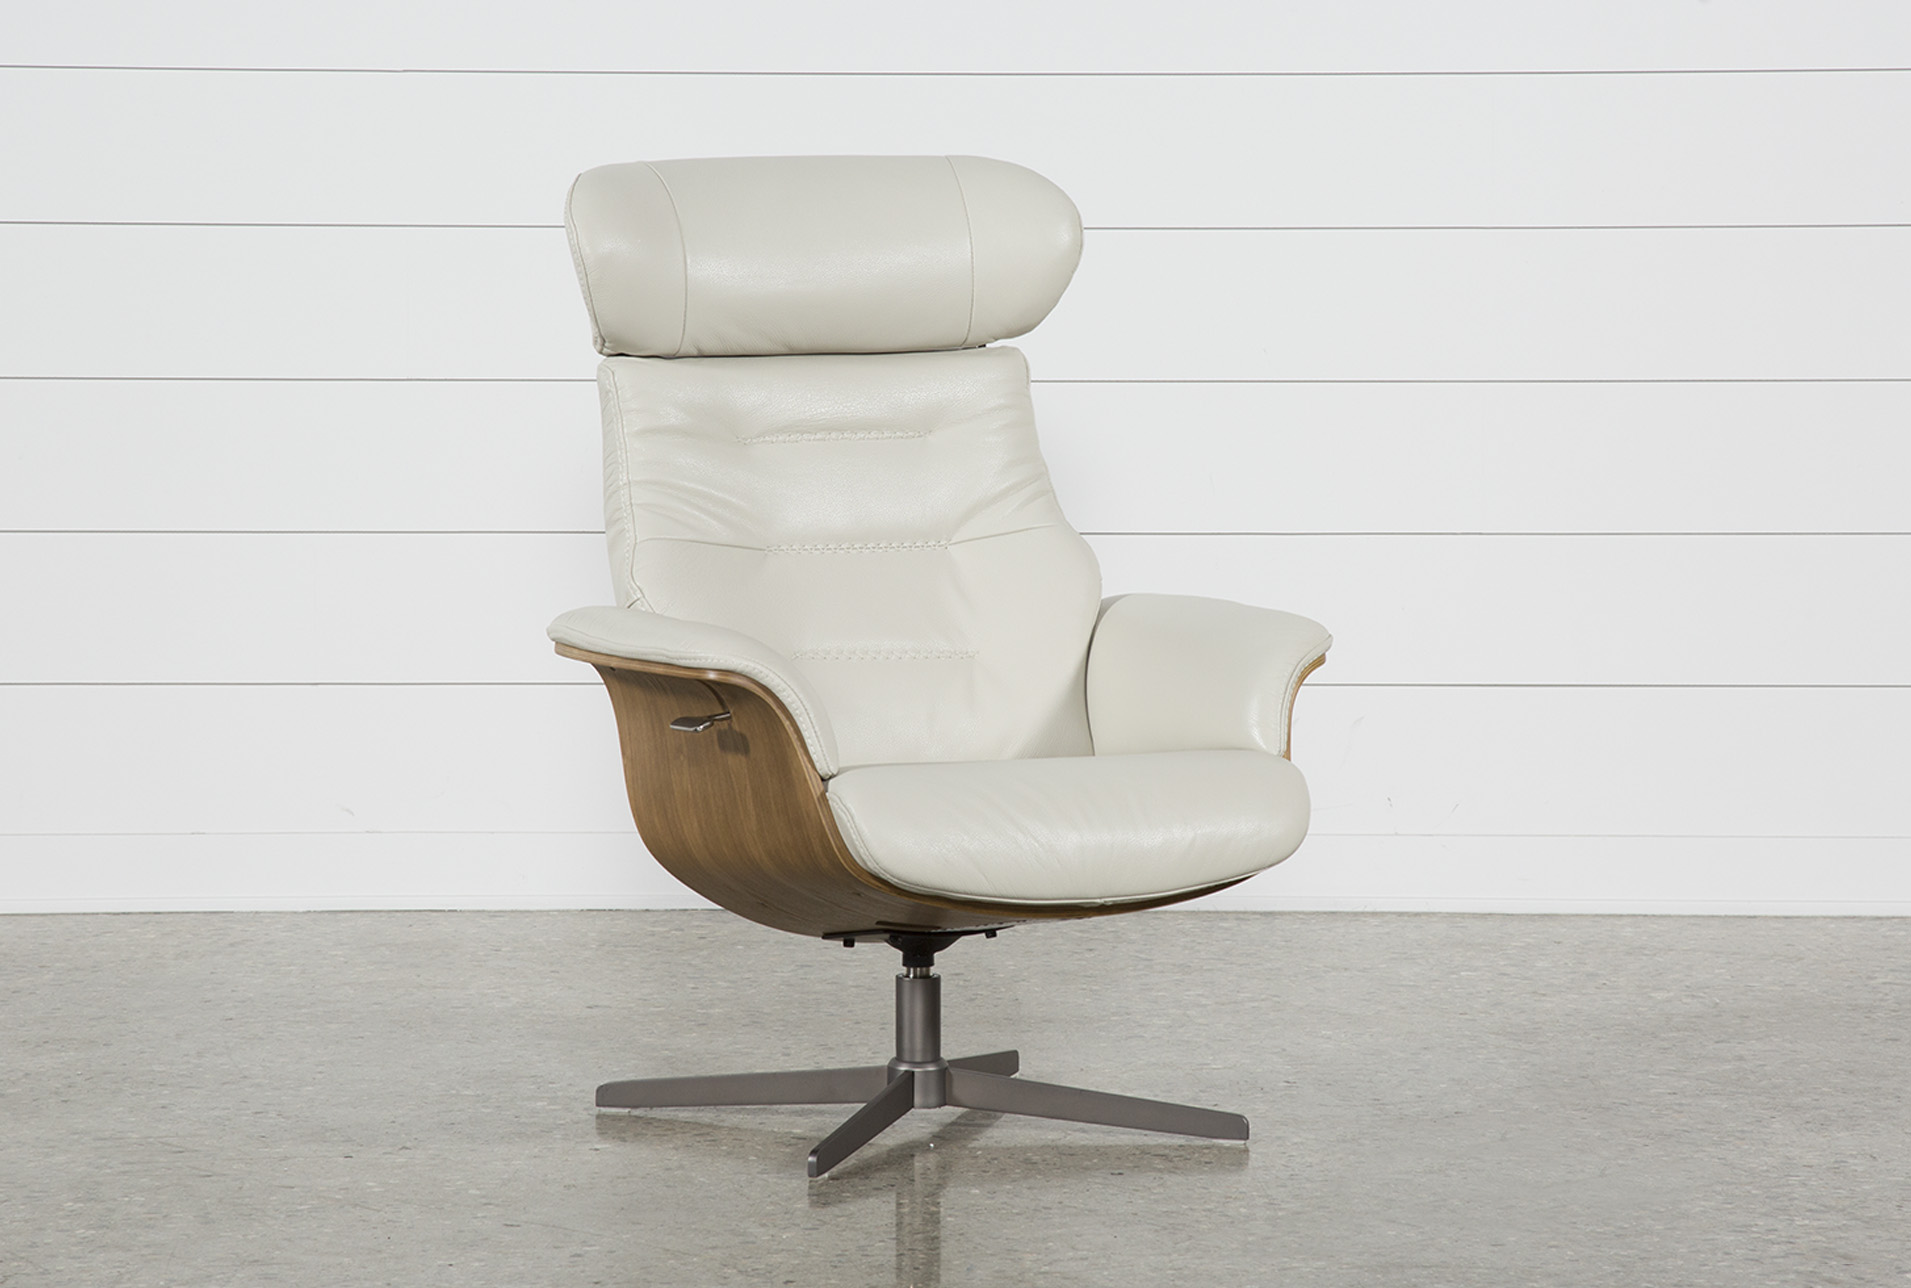 Chair Leather Reclining Swivel Amala Bone Leather Reclining Swivel Chair